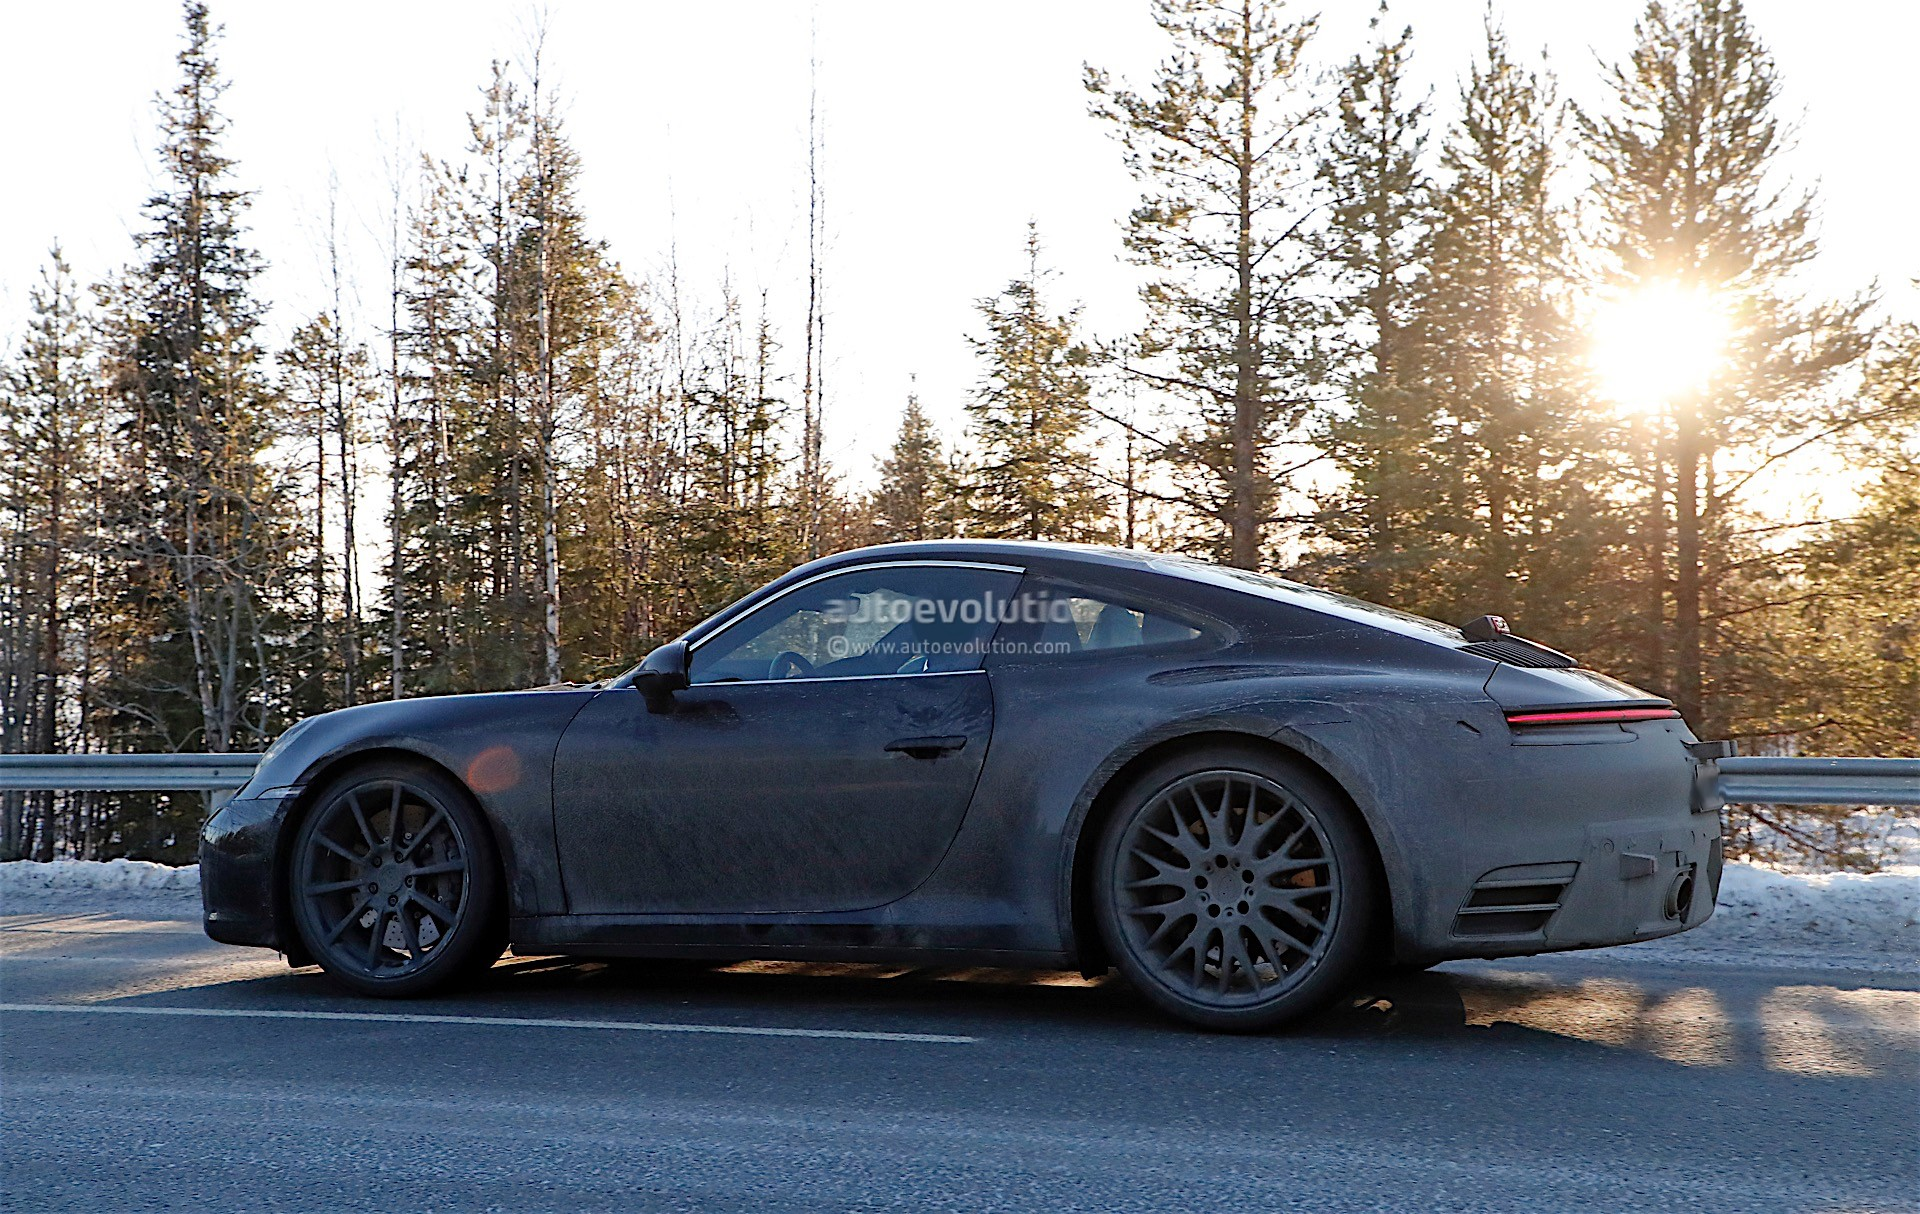 spy-photos-porsche-911-992-poses-with-the-spoiler-down-1-and-2-of-12_6